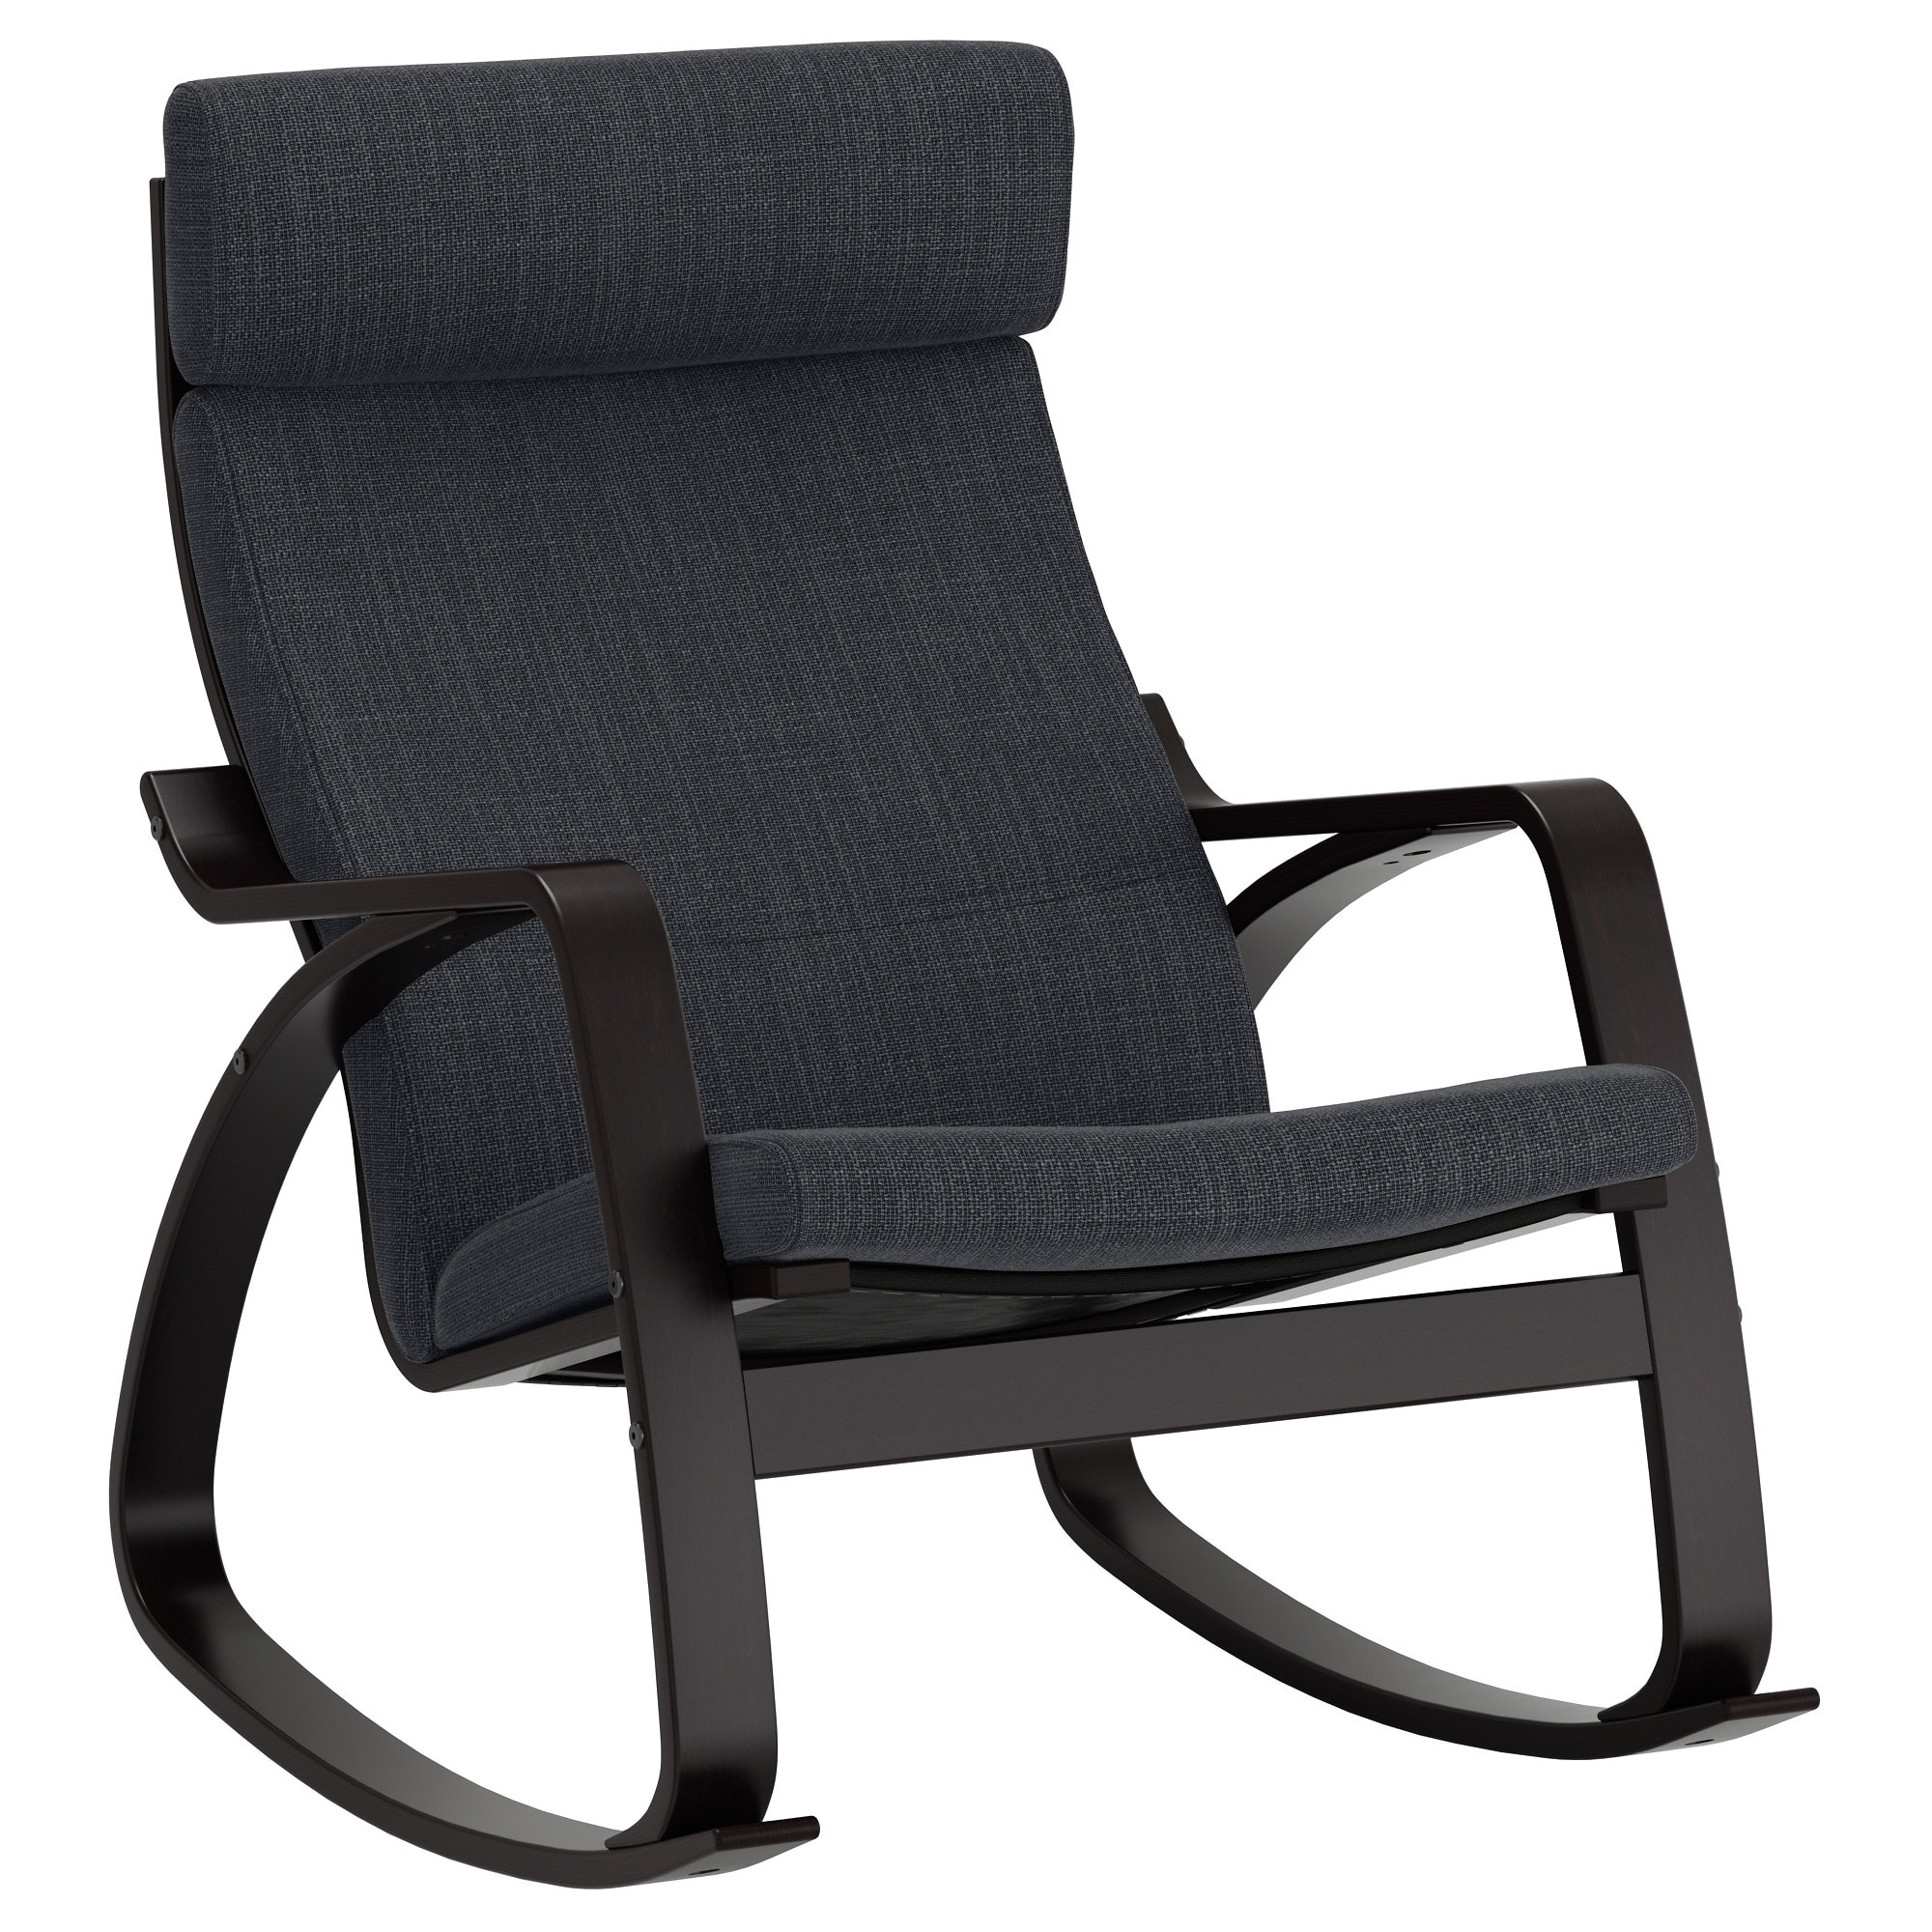 Ikea Rocking Chairs Inside 2019 Poäng Rocking Chair Black Brown/hillared Anthracite – Ikea (Gallery 7 of 20)